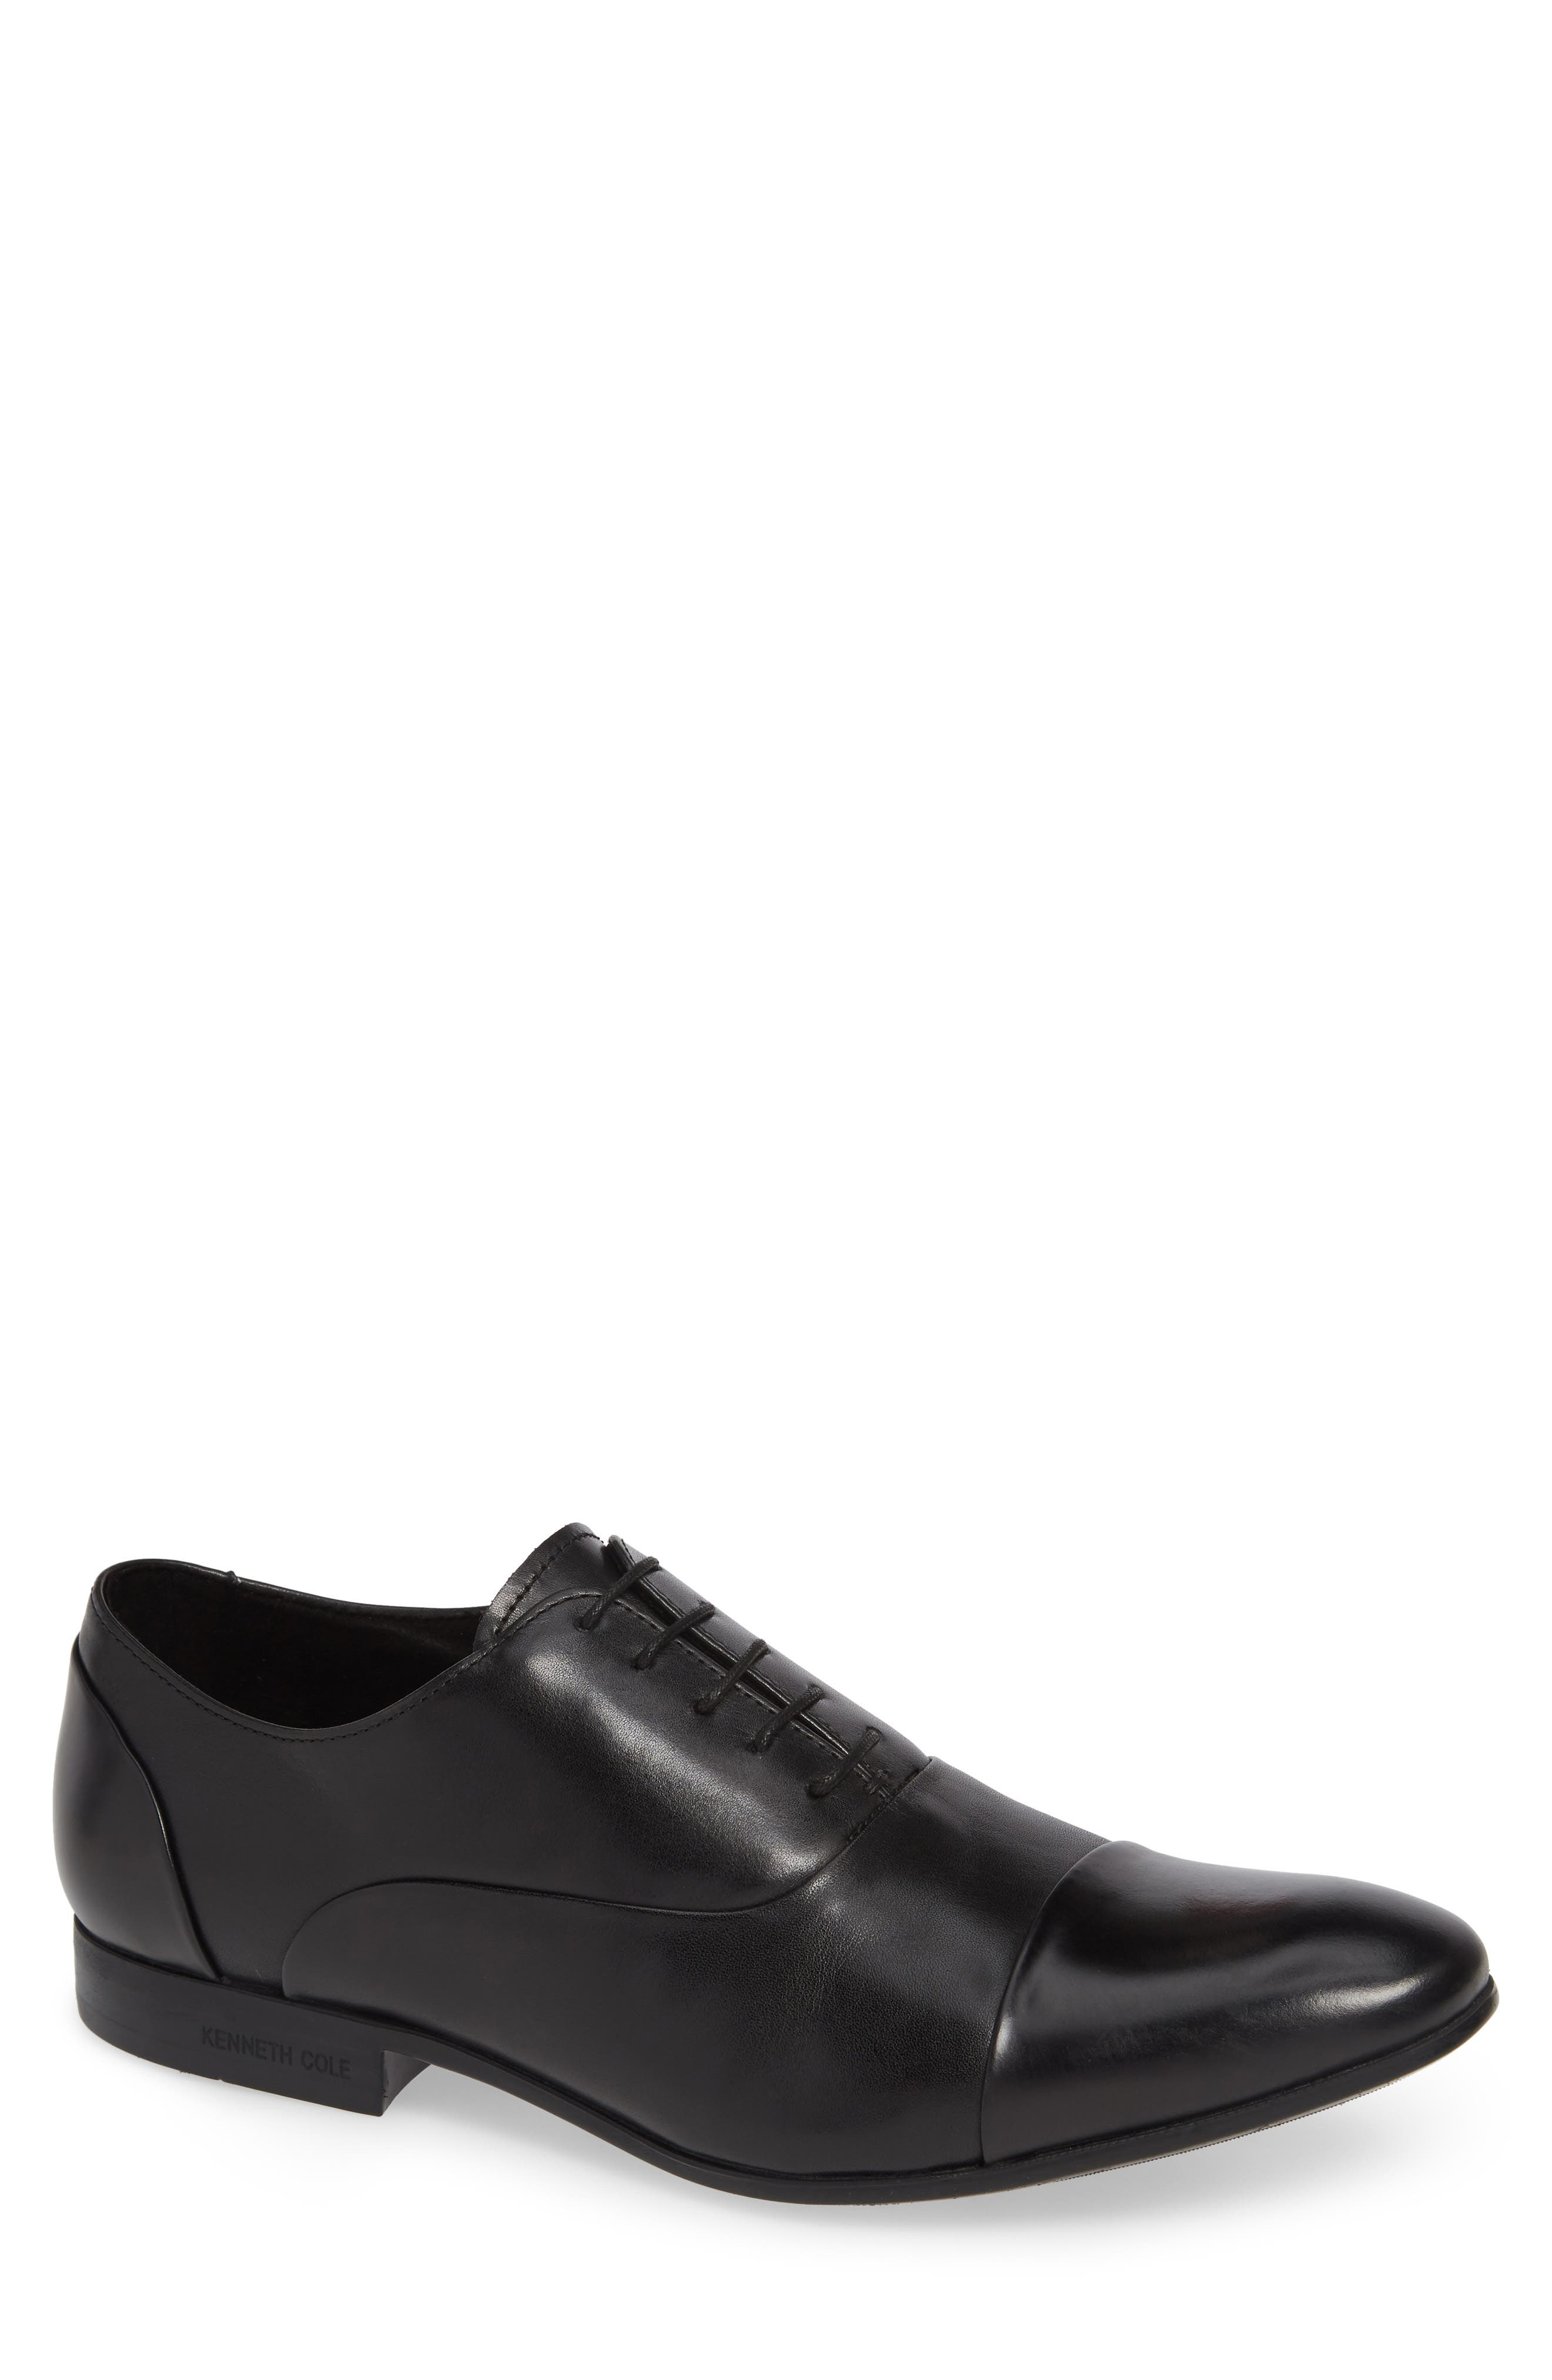 KENNETH COLE NEW YORK,                             Mix Cap Toe Oxford,                             Main thumbnail 1, color,                             008